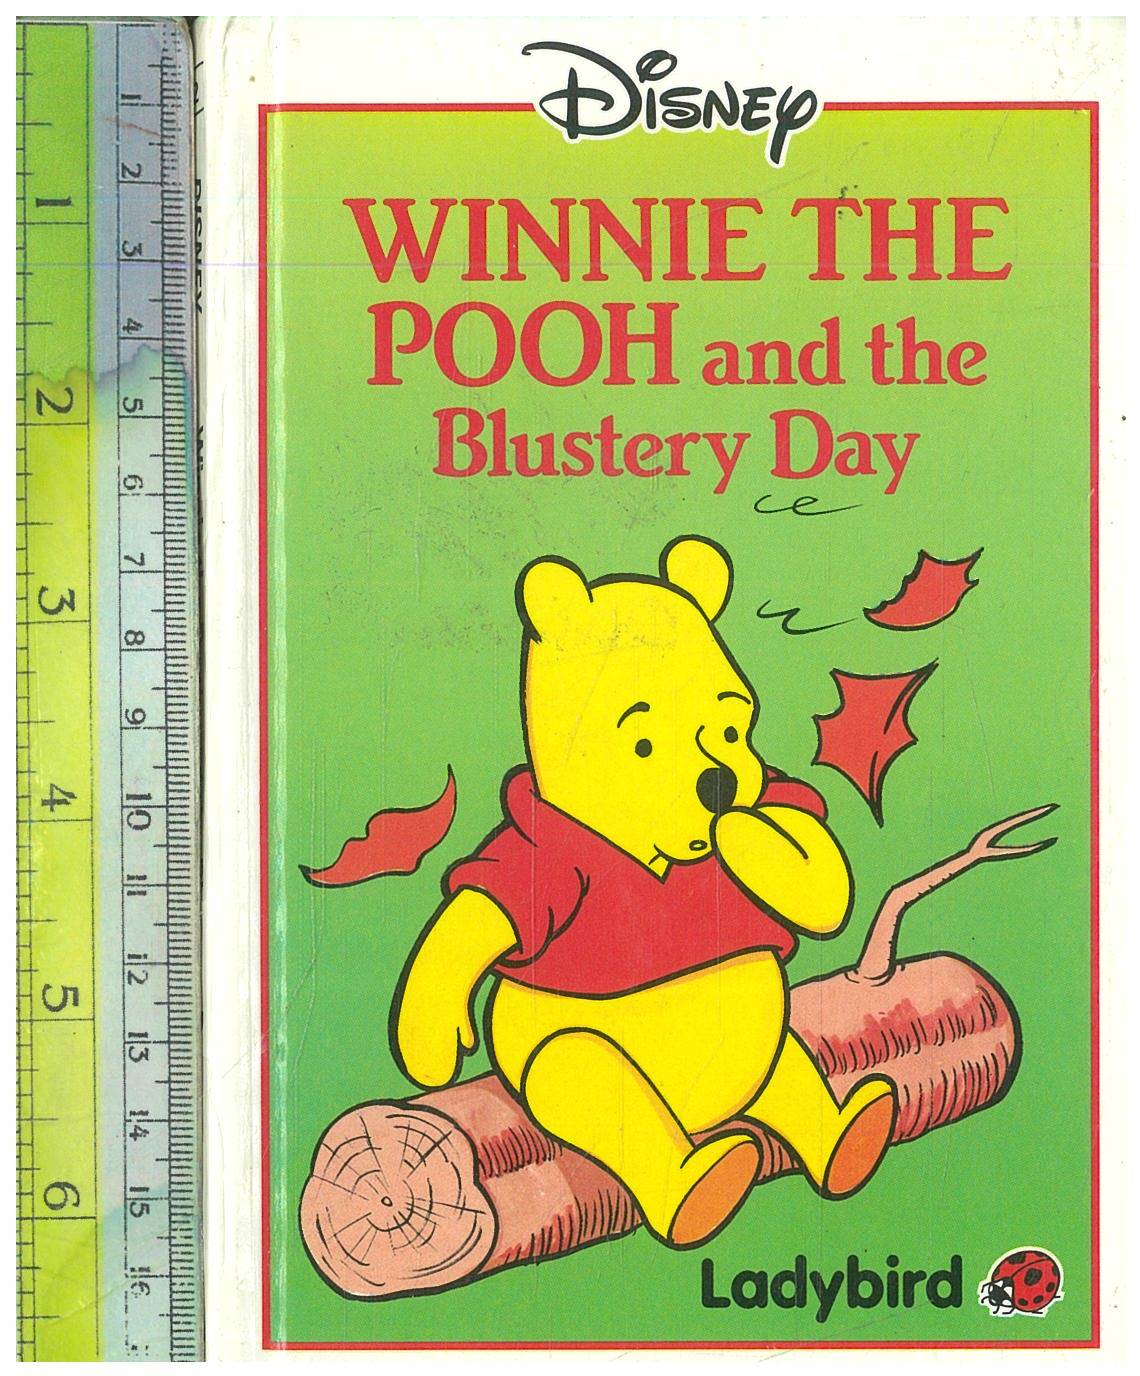 Pooh and the Blustery Day